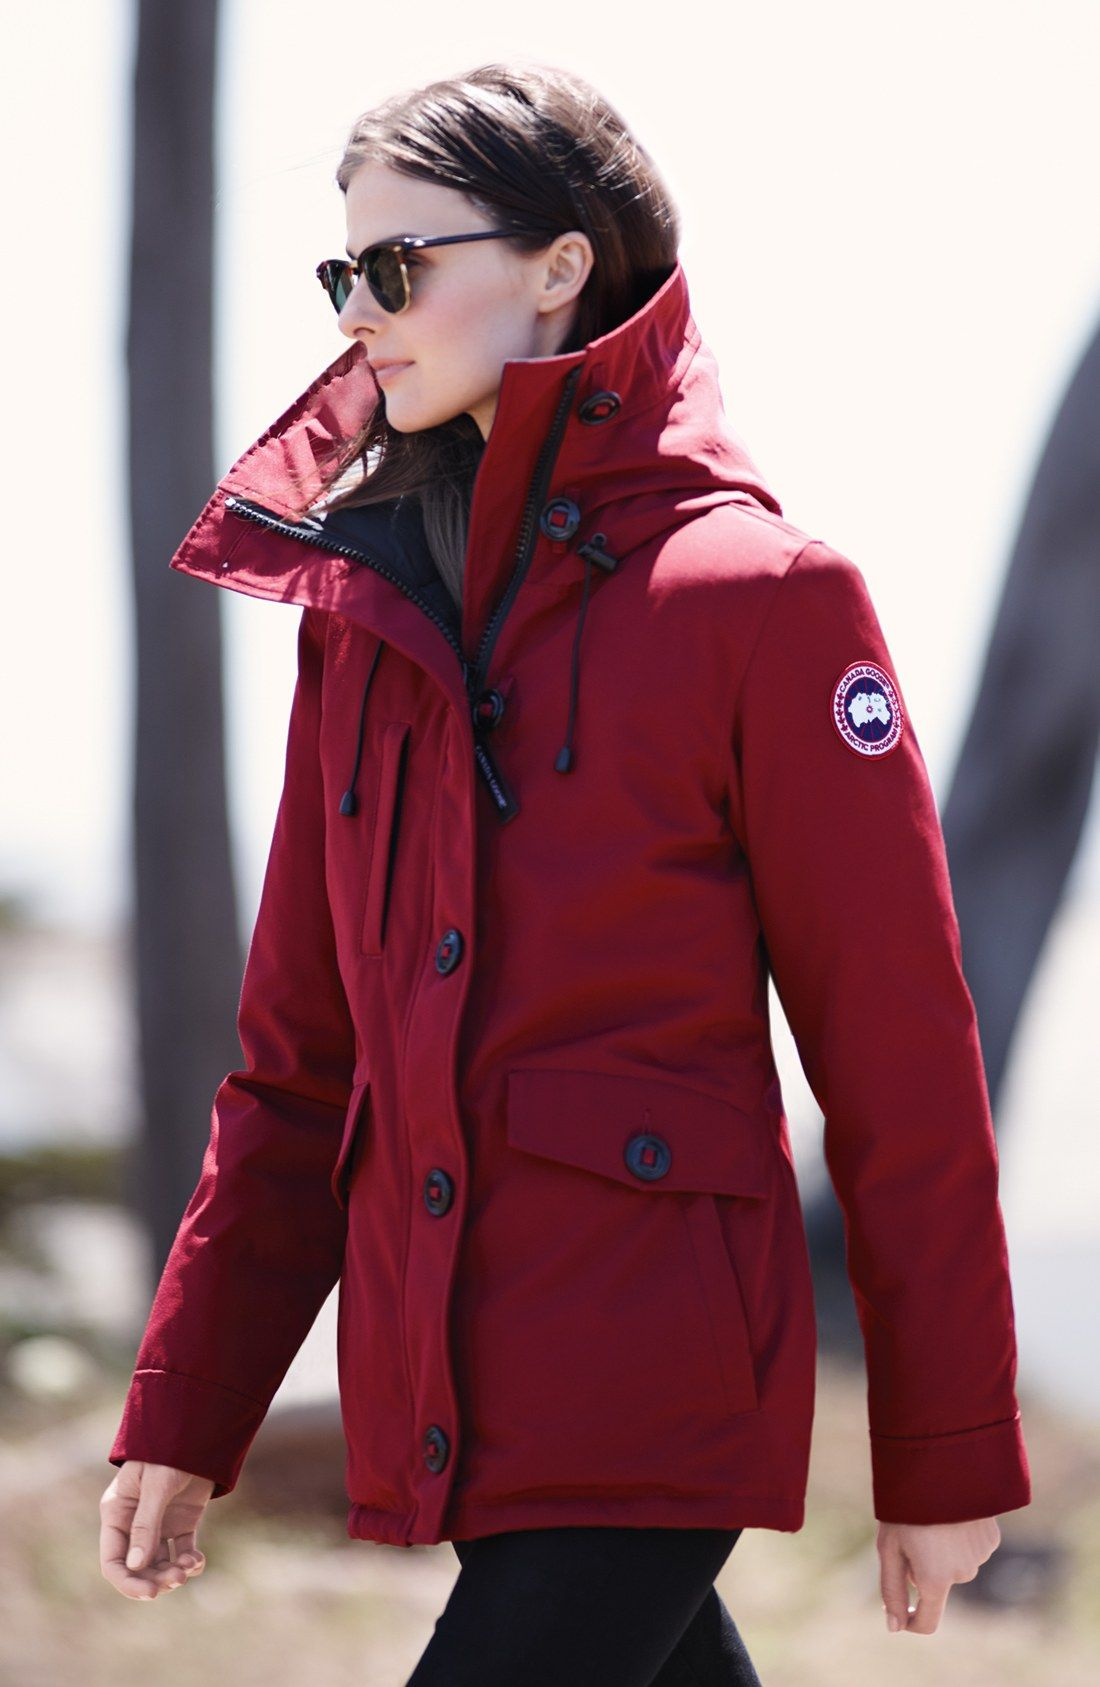 canadagoose 99 on style parka down parka canada goose parka rh pinterest com